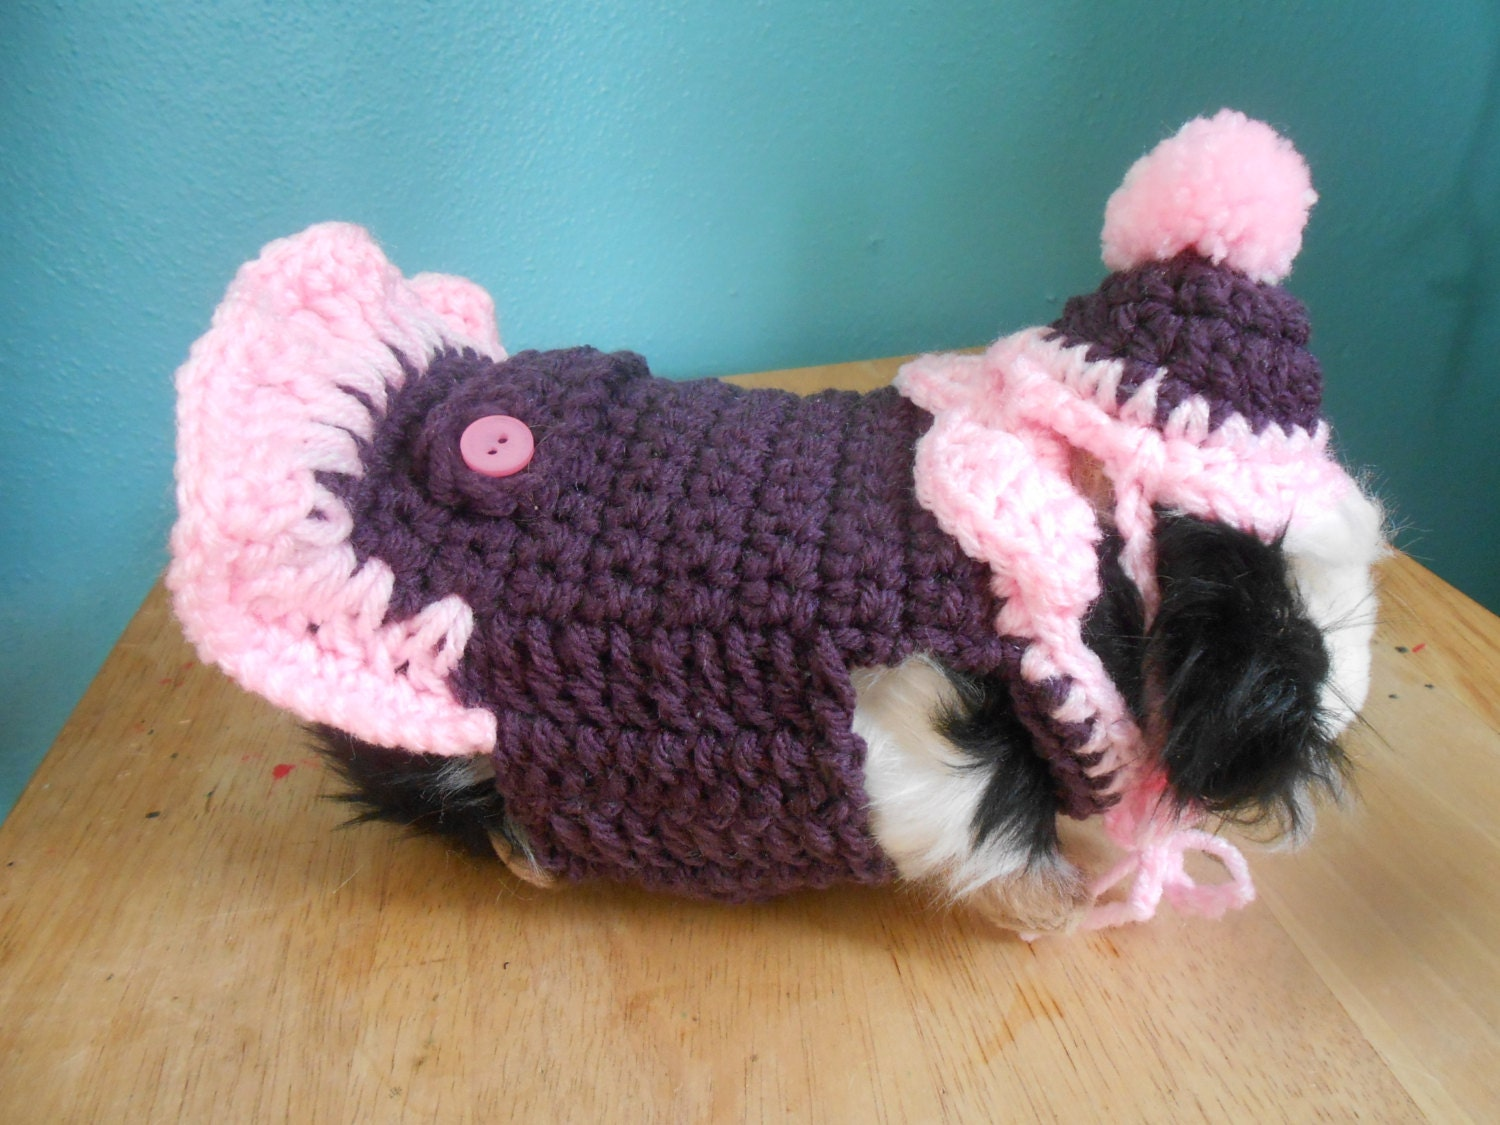 Guinea pig Sweater Crocheted Dress for Guinea pig with